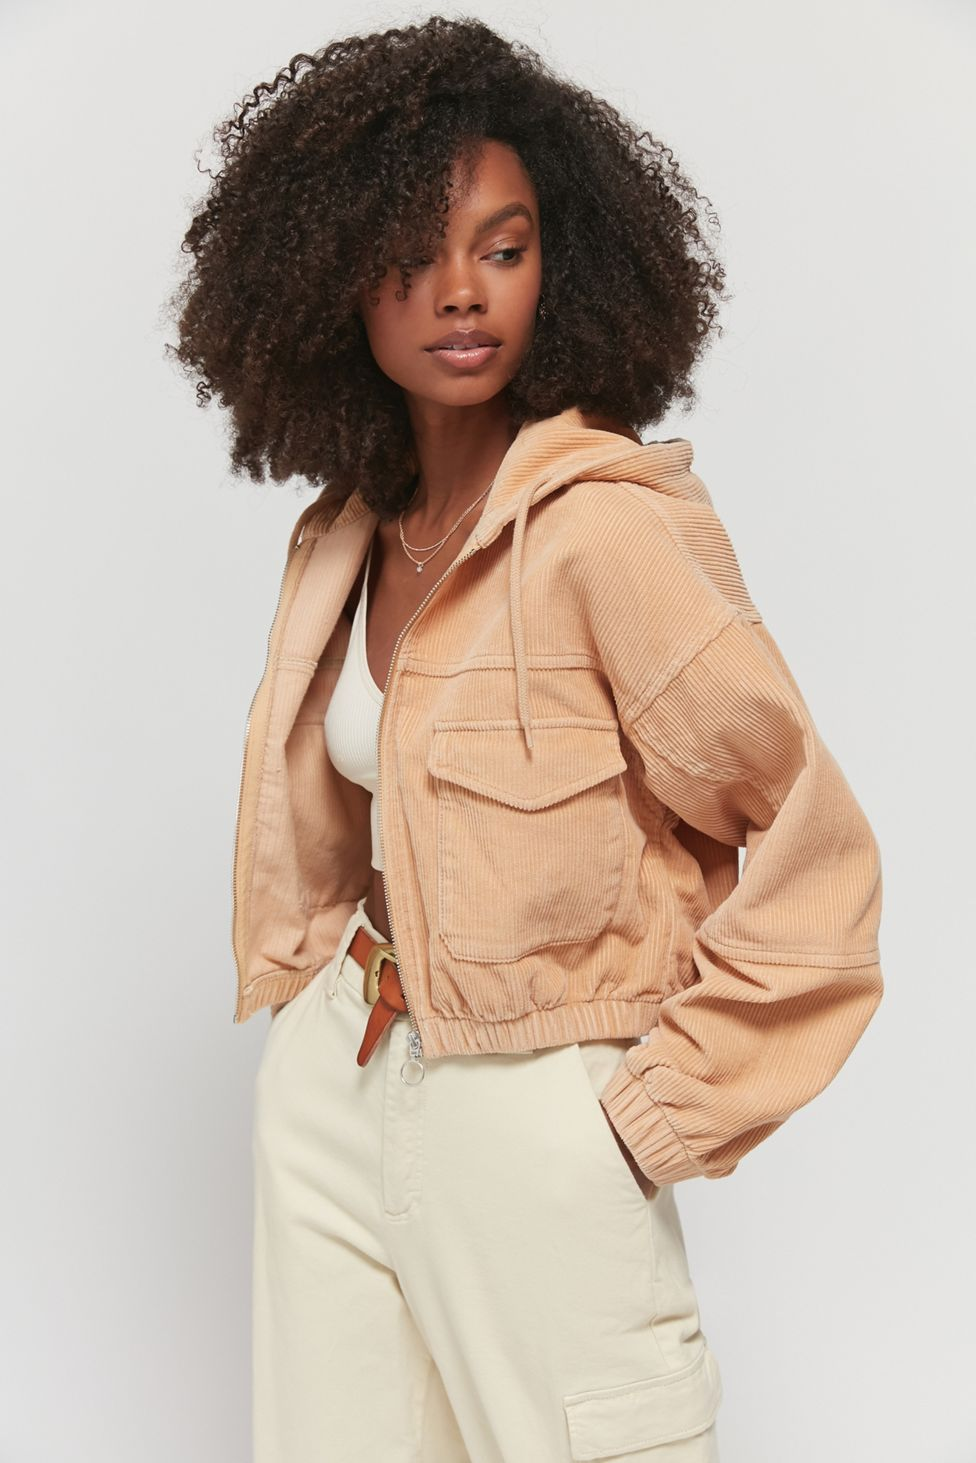 Urban Outfitters Labor Day 2020 Sale corduroy jacker